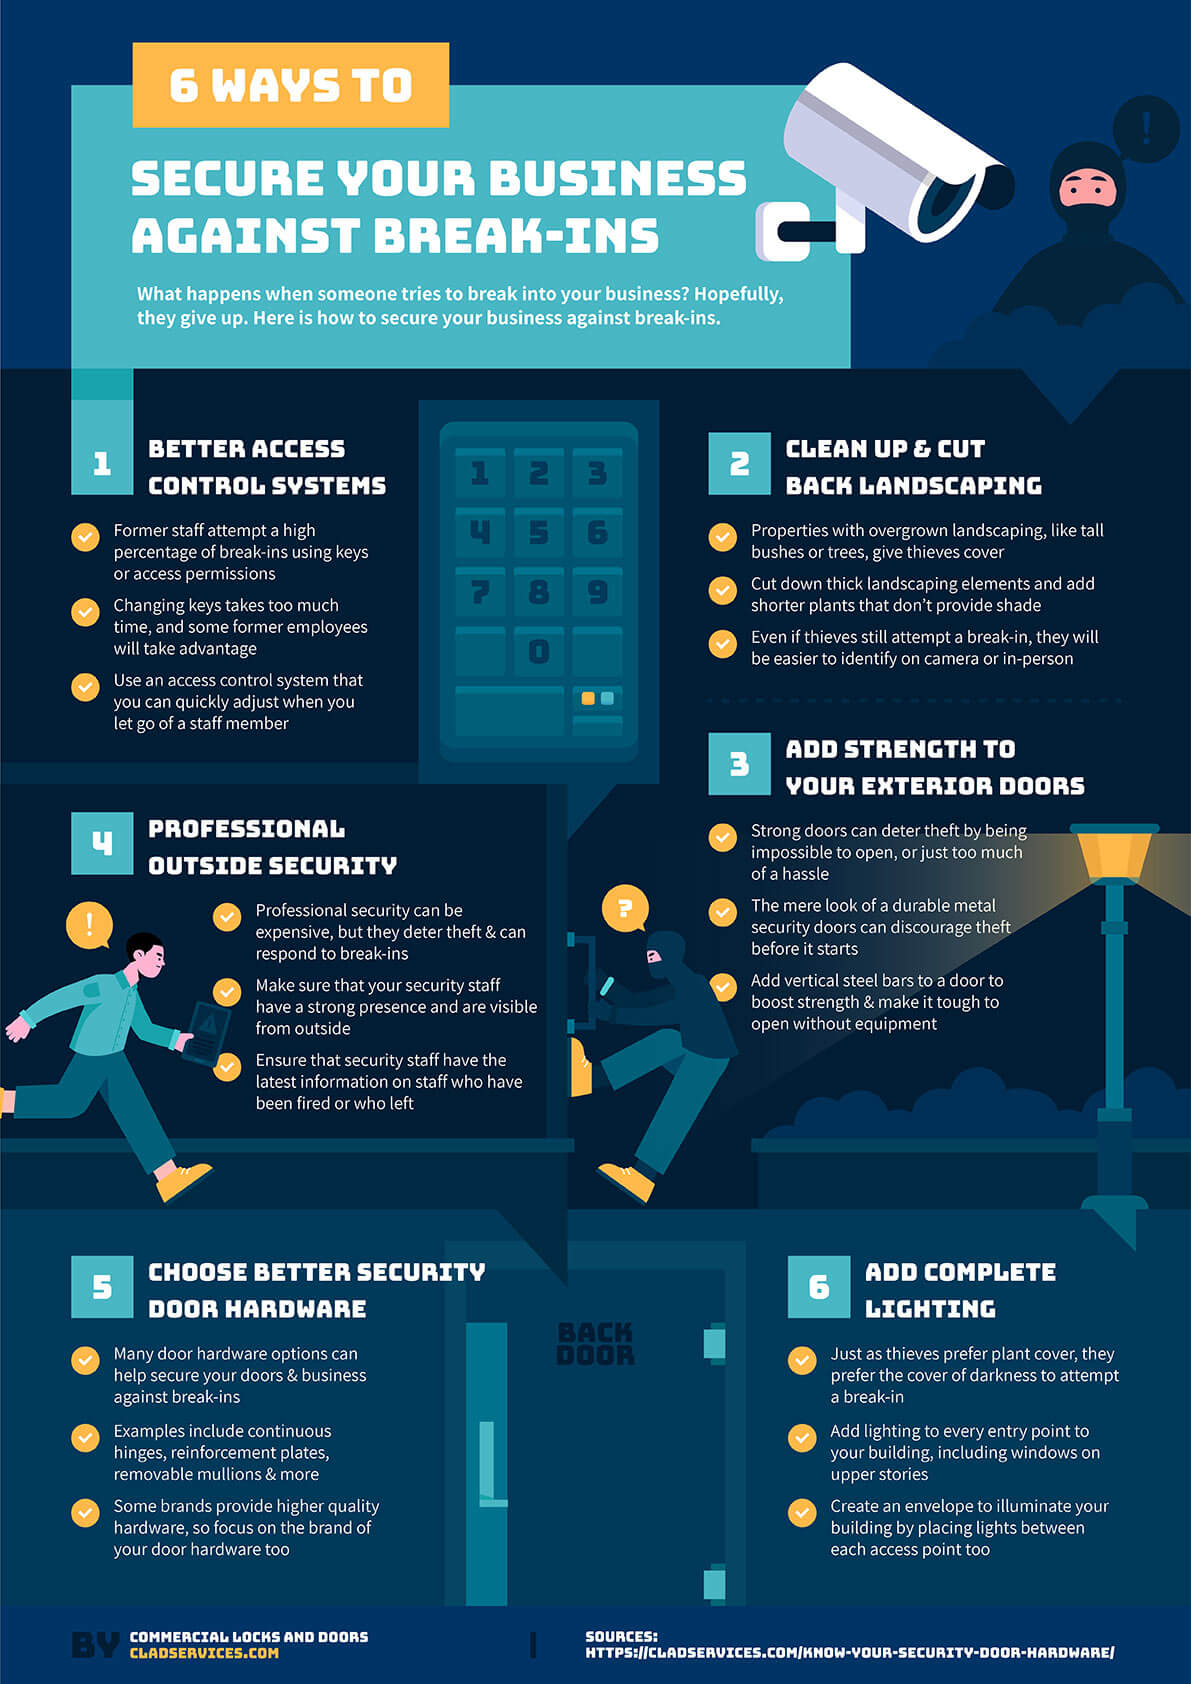 secure-your-business-against-break-ins-infographic-plaza